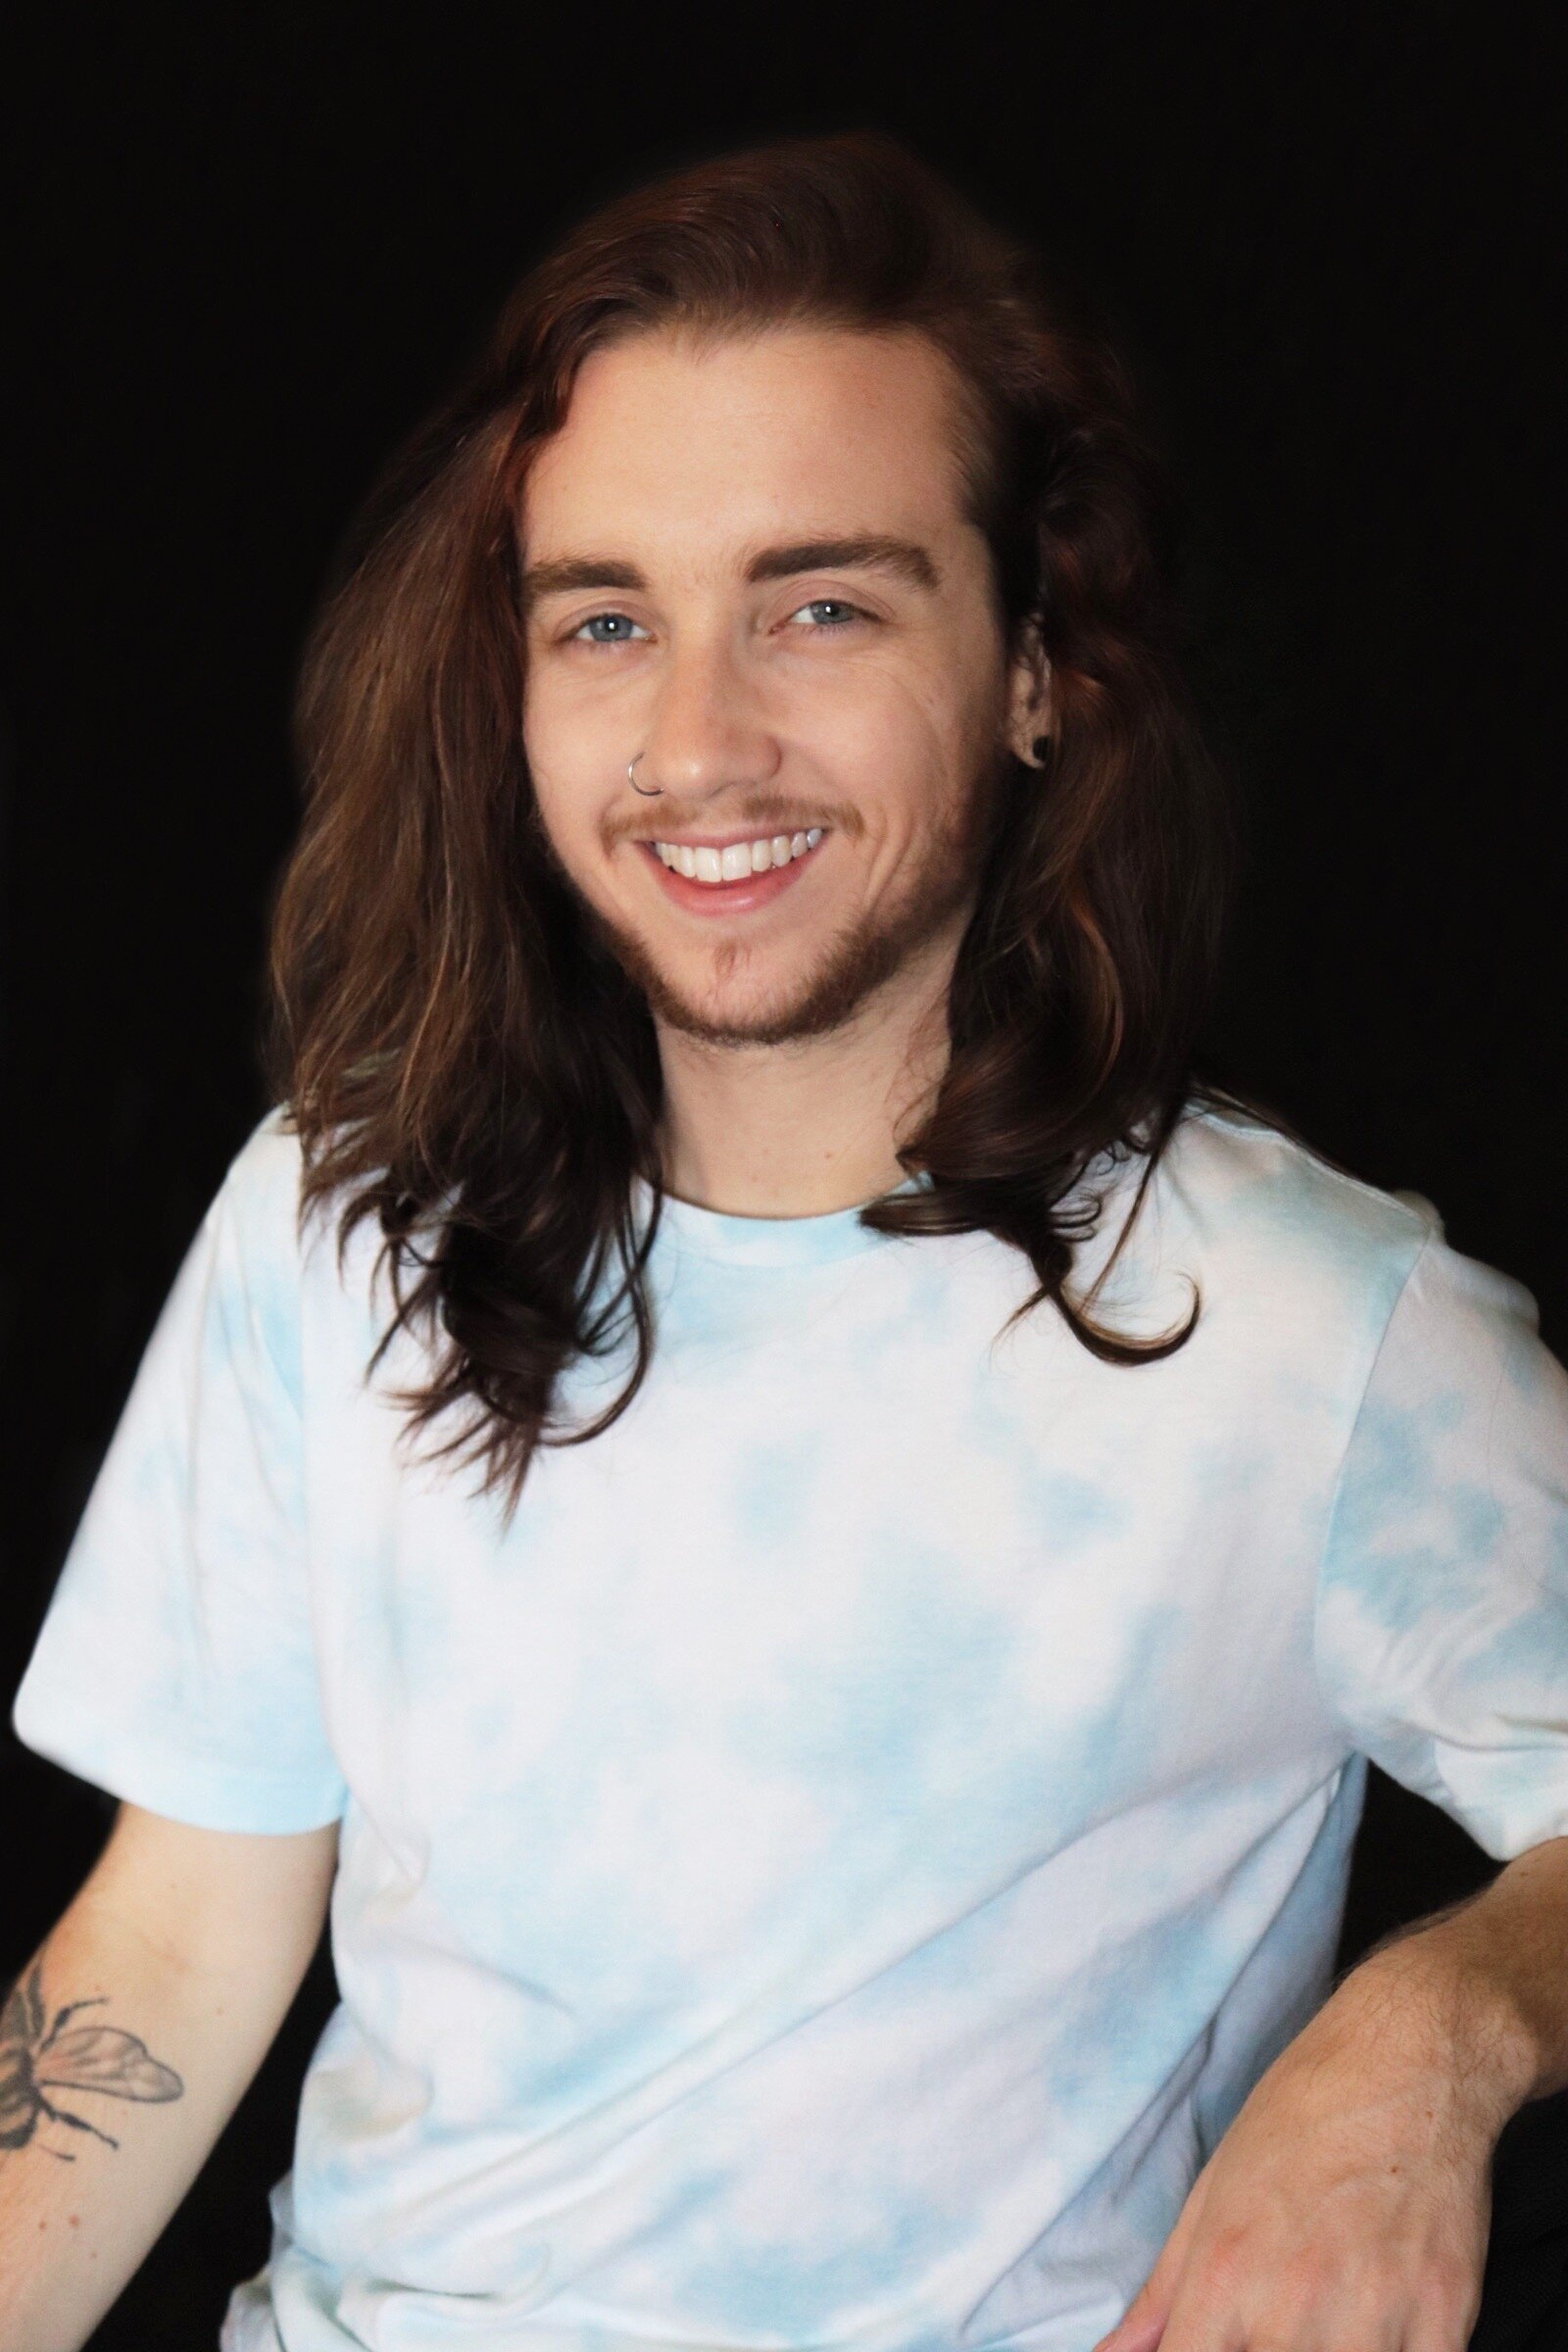 A white non-binary individual with long brown hair smiles for a close headshot. He is wearing a light blue tye-dye shirt against a black background.